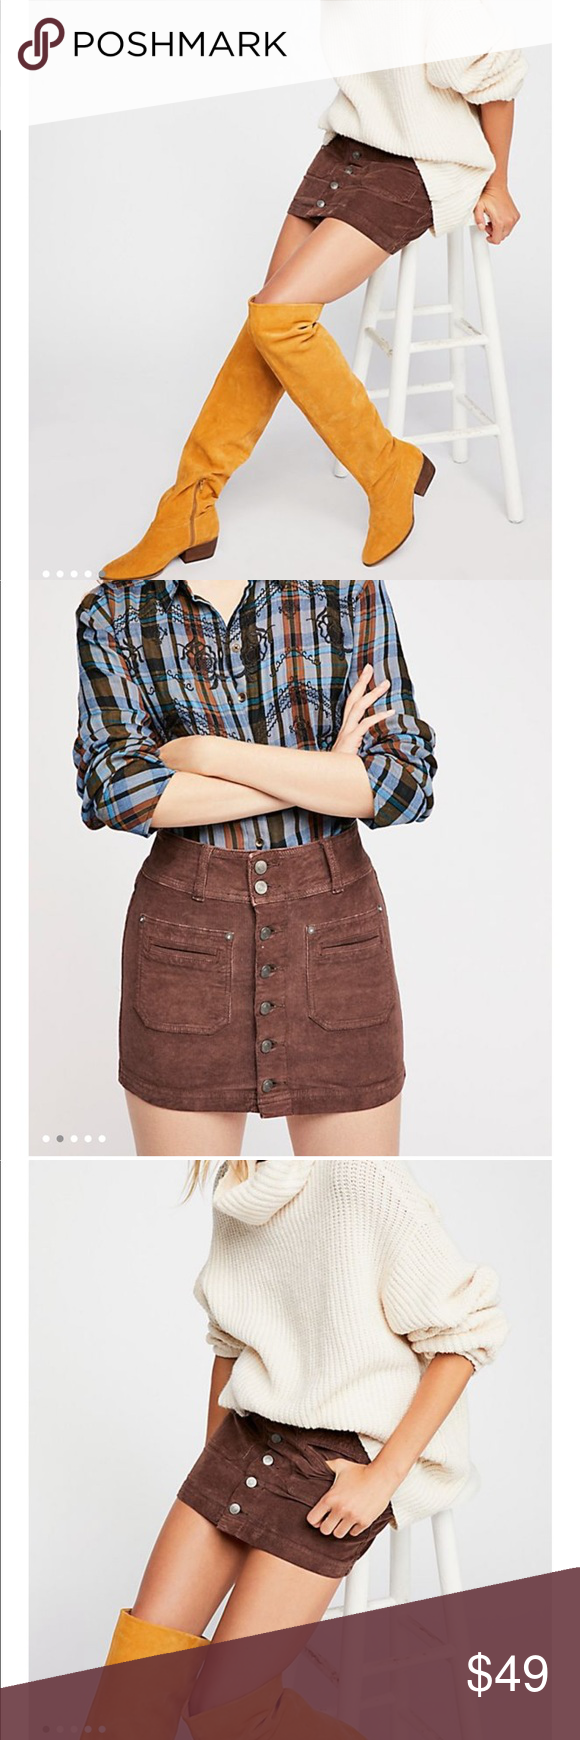 6c9aae9d38 Joanie Cord Skirt By Free people🍁 NWT / 26 -Button up corduroy mini skirt